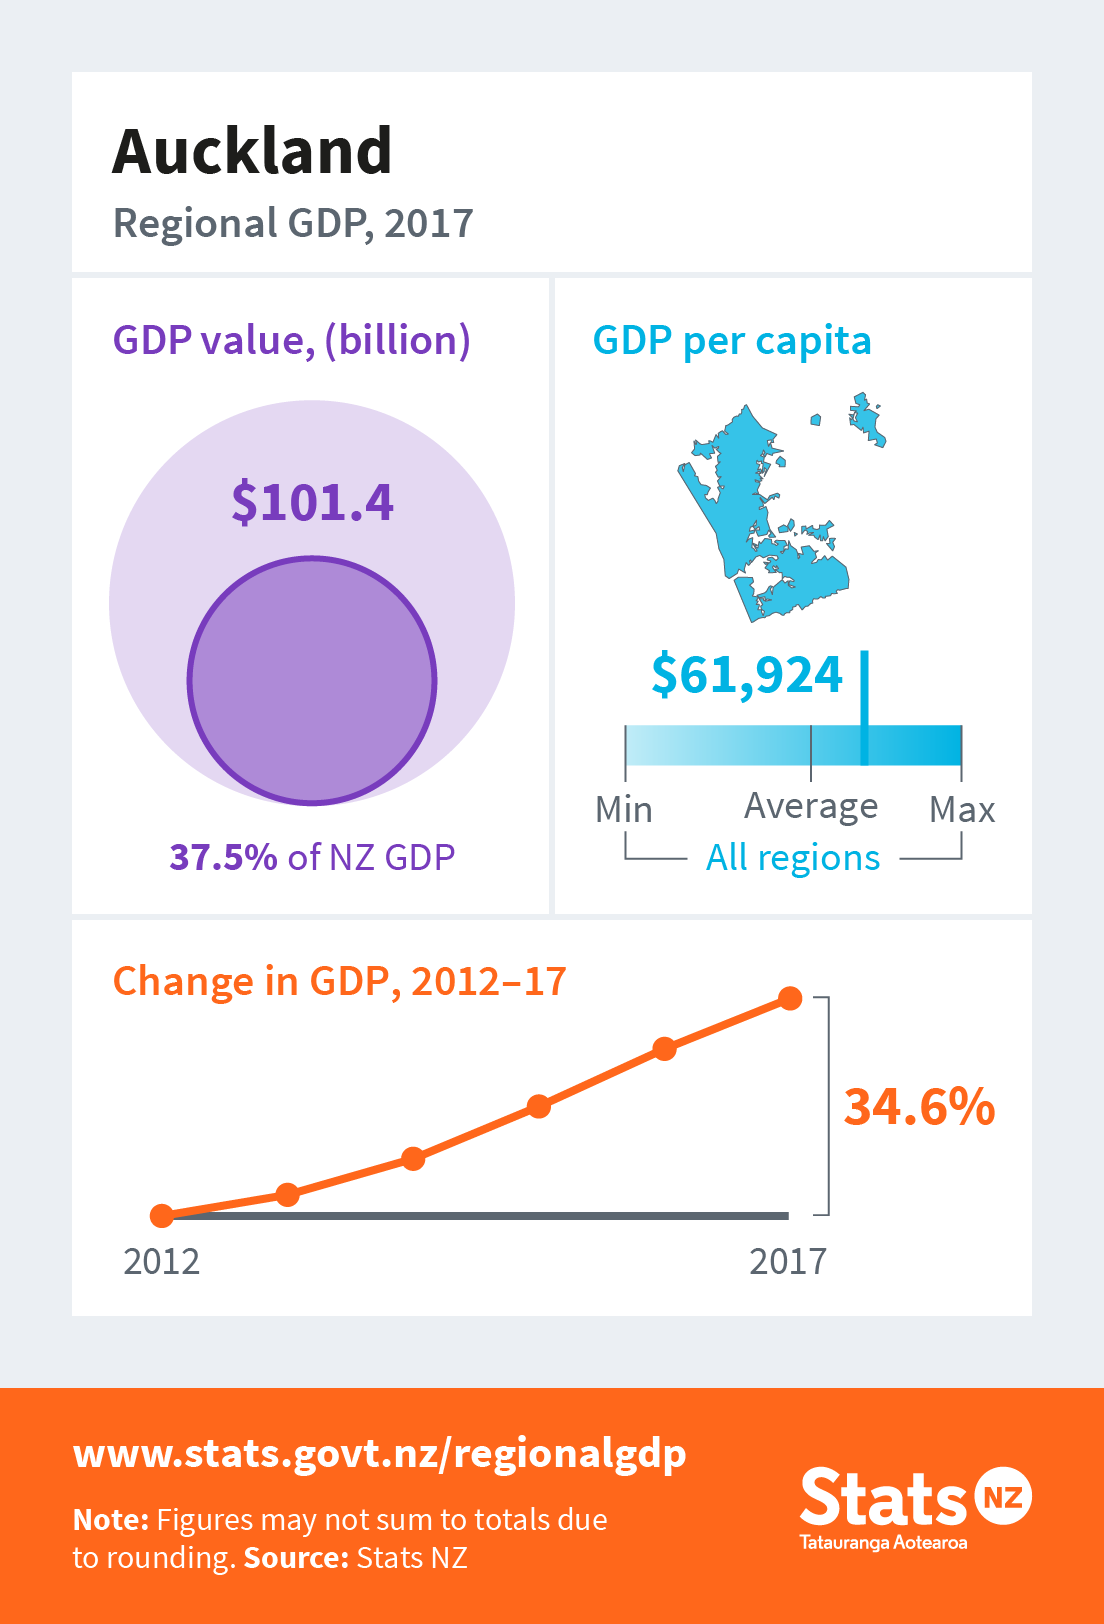 Auckland Surpasses $100 BILLION in GDP for First Time in History